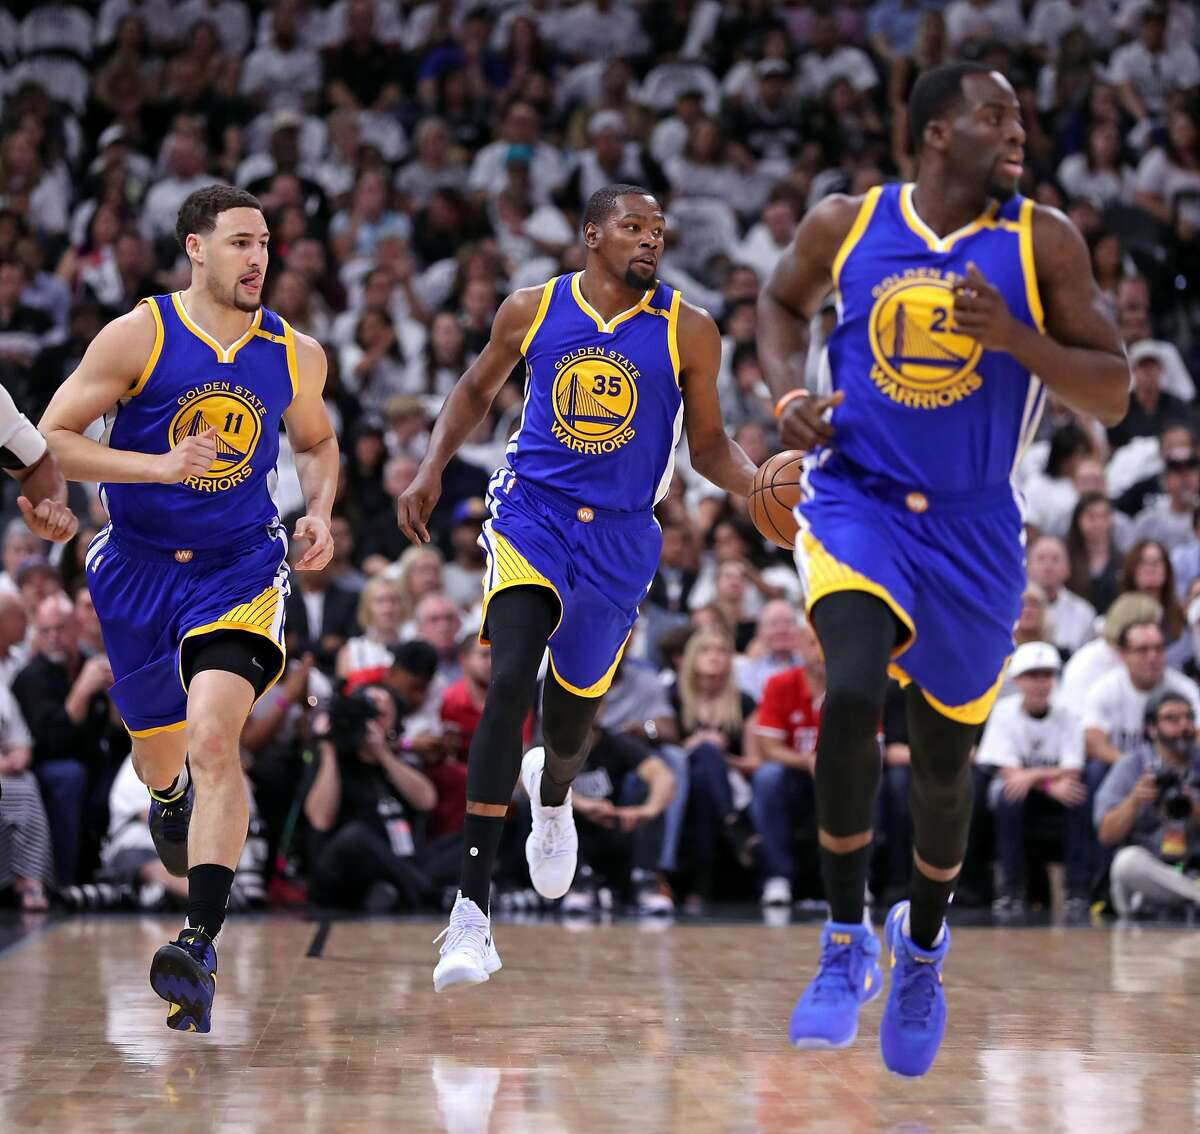 Golden State Warriors' Kevin Durant brings the ball up court flanked by Klay Thompson and Draymond Green in 1st quarter against San Antonio Spurs'during Game 3 of NBA Western Conference Finals at AT&T Center in San Antonio, Texas, on Saturday, May 20, 2017.